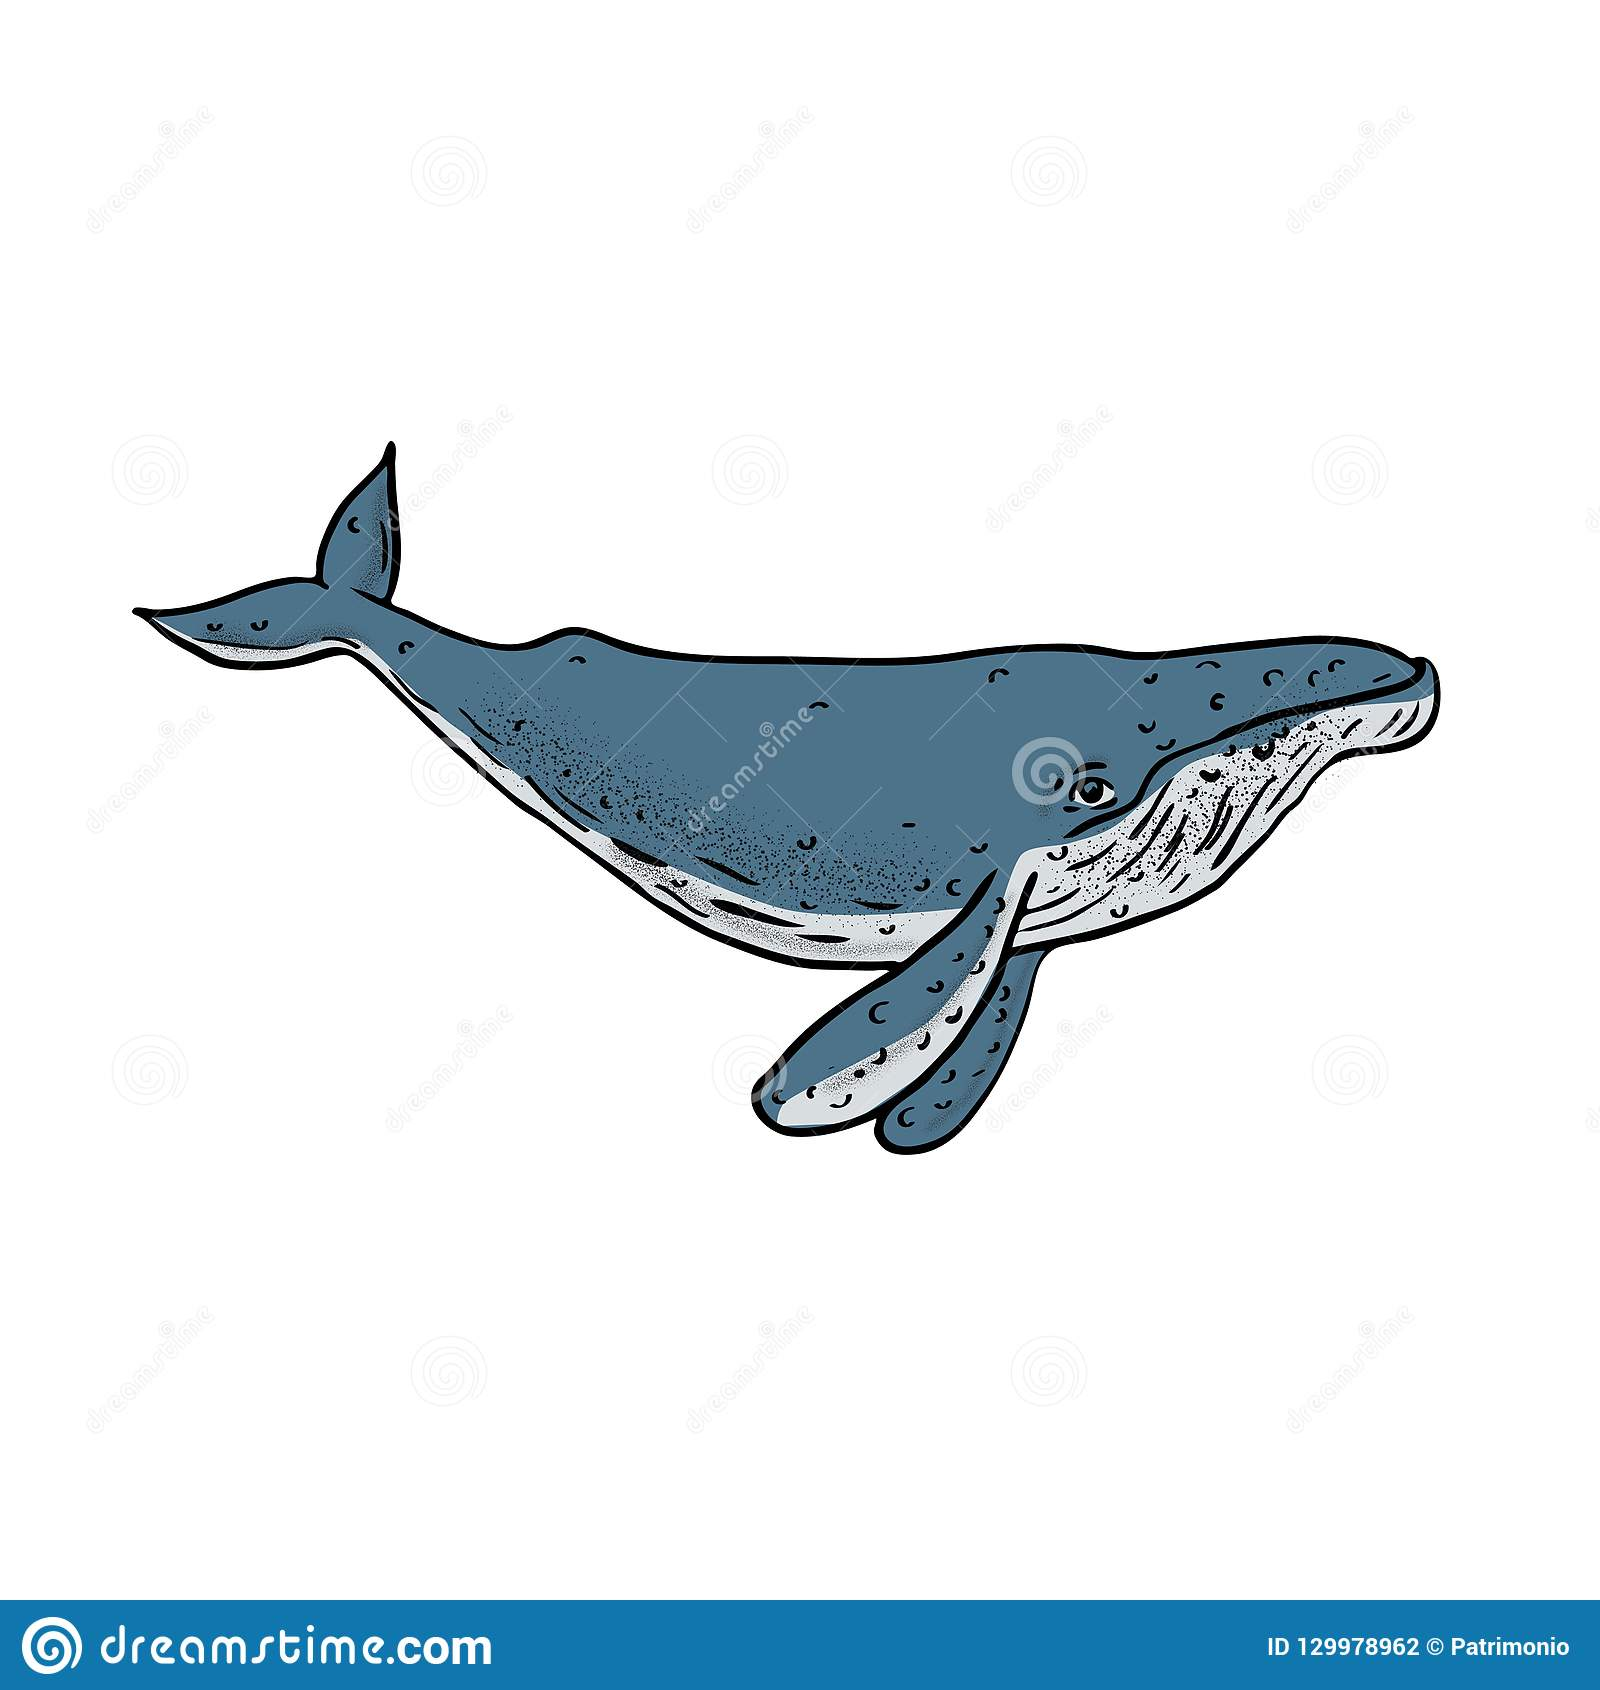 Dessin De Couleur De Baleine De Bosse Illustration De Vecteur